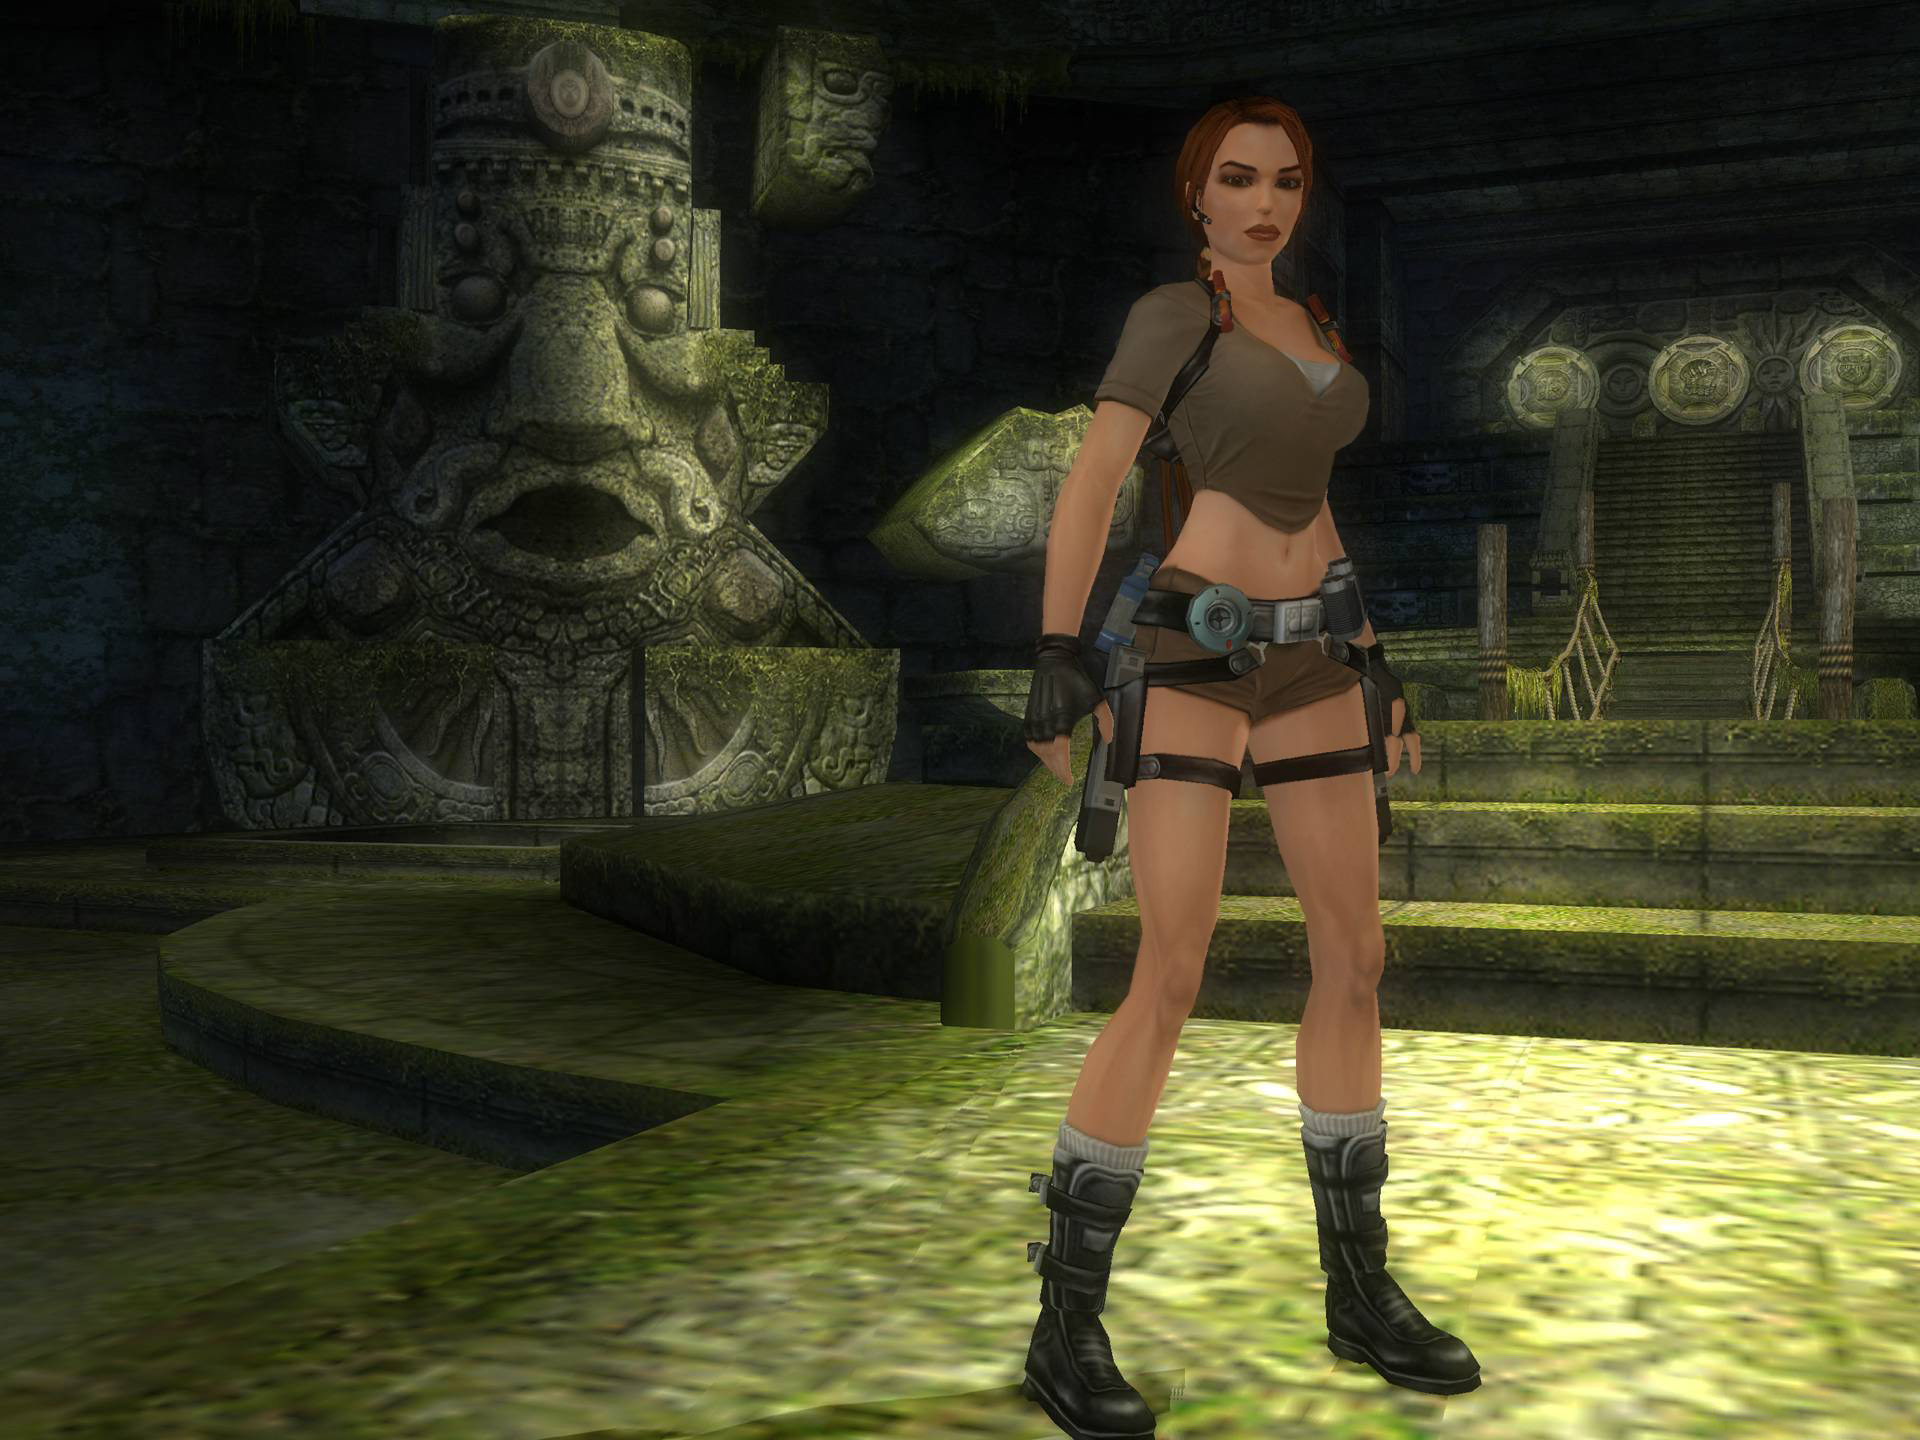 Lara croft 3d alien hentia films